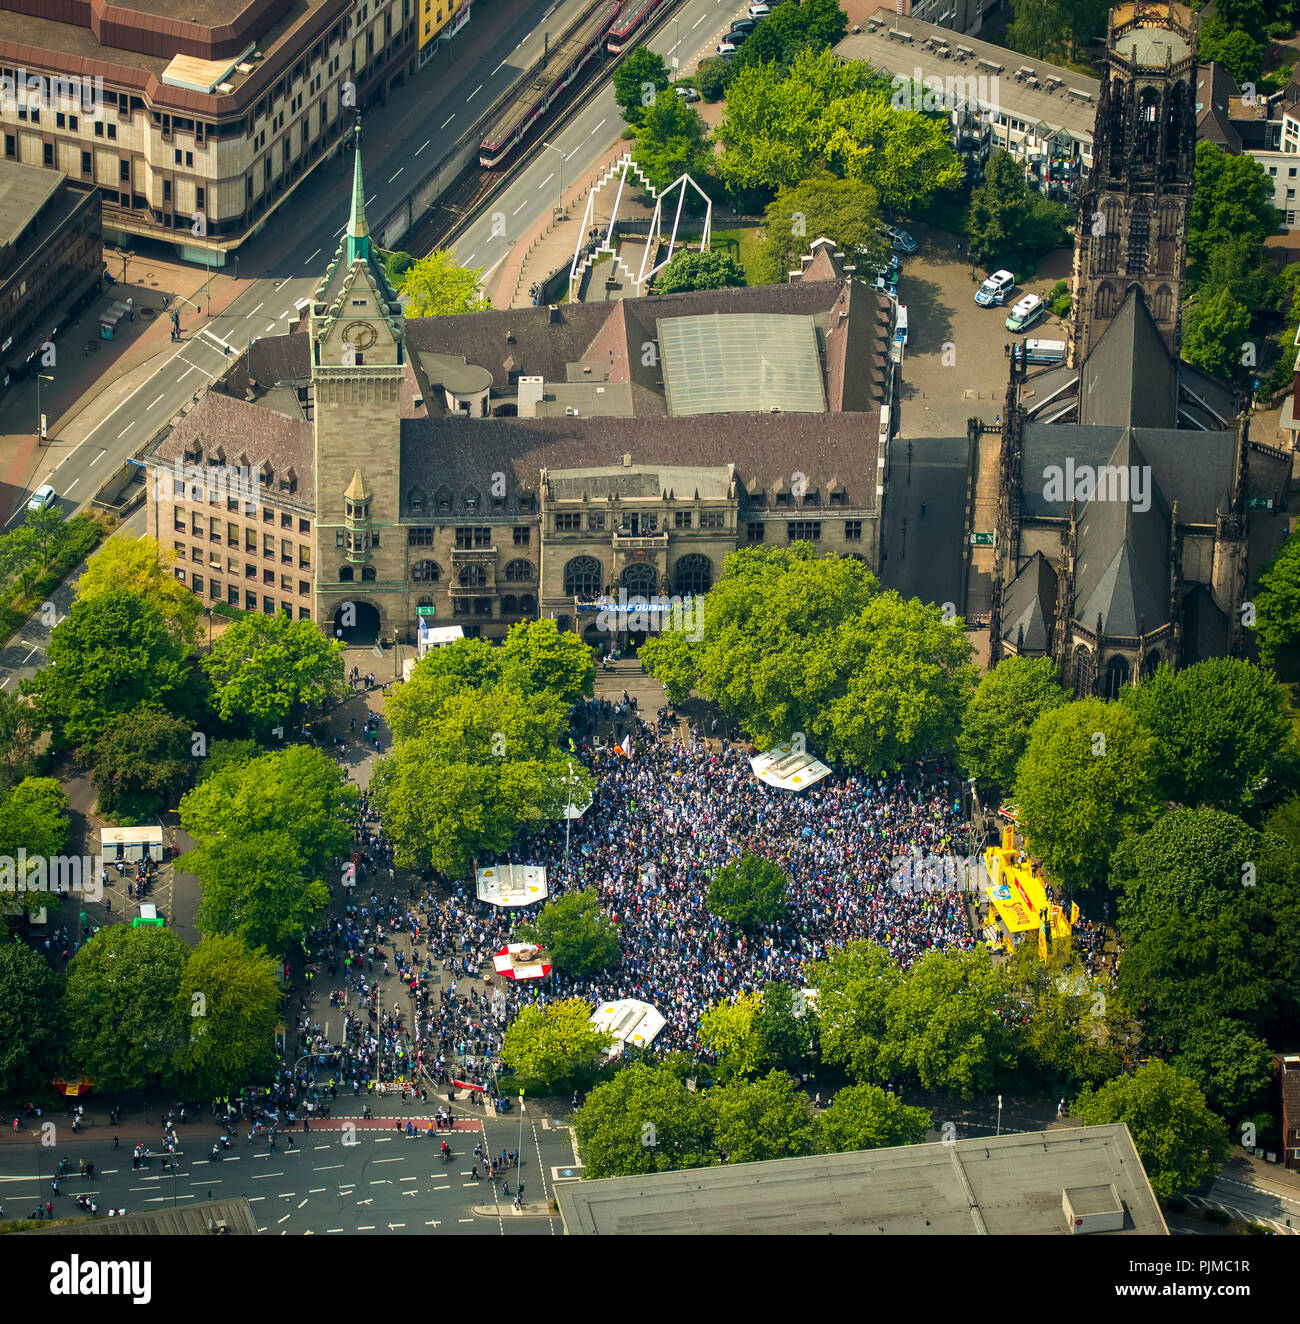 On Pentecost Sunday, MSV fans celebrating the promotion of their team into the 2nd Bundesliga on the Burgplatz in front of the Duisburg town hall , Duisburg, Ruhr area, North Rhine-Westphalia, Germany - Stock Image